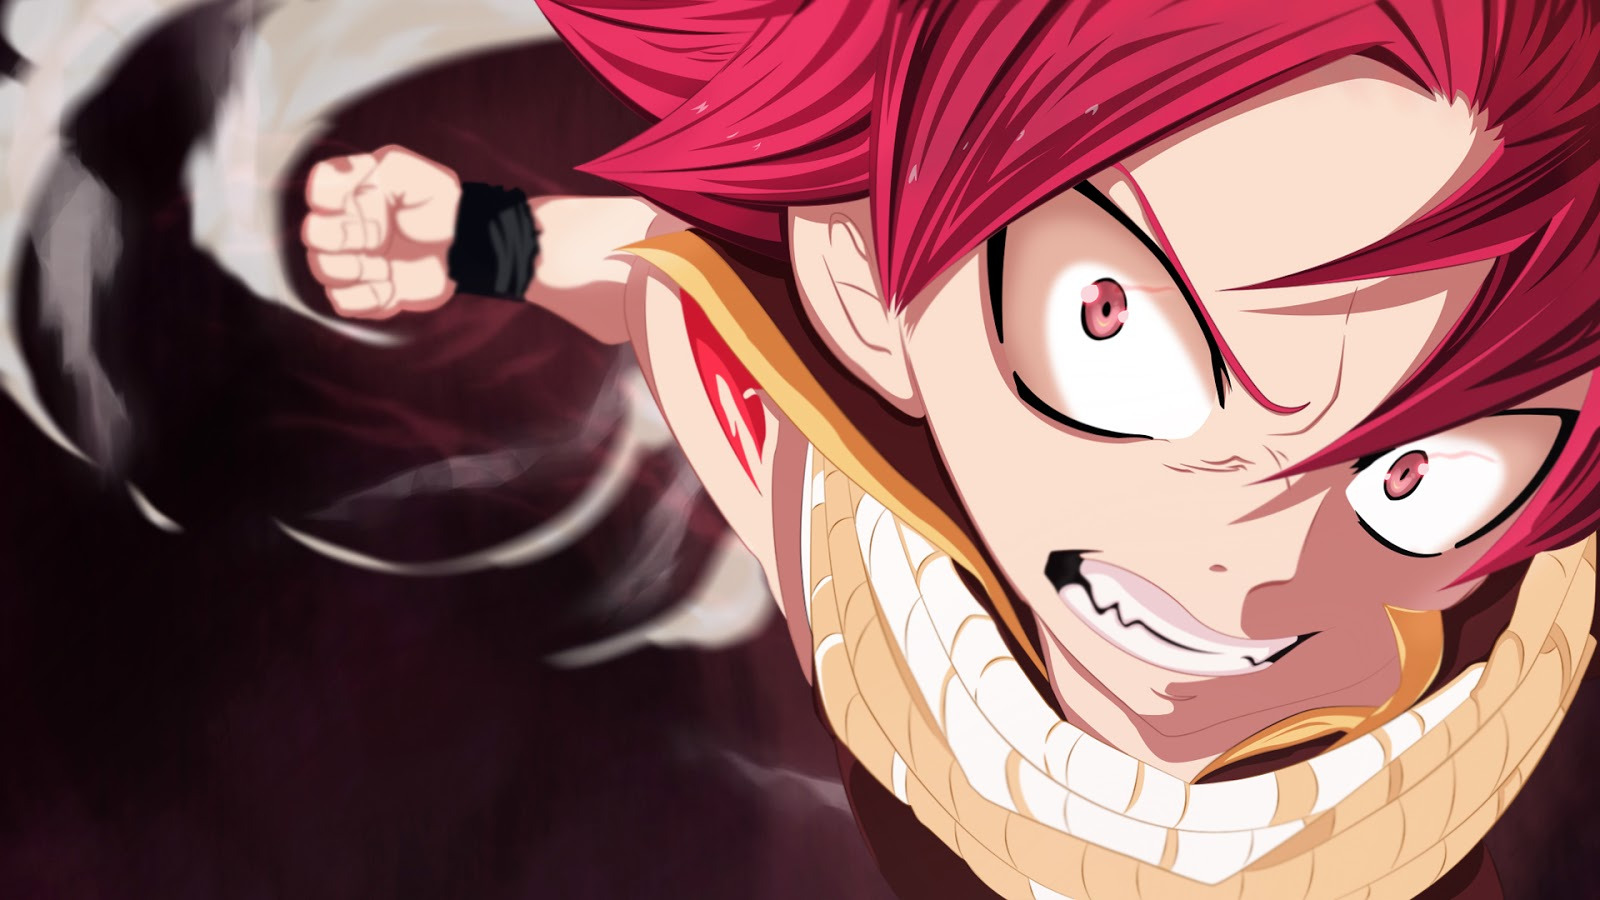 natsu dragneel anime fairy tail hd wallpaper image picture 1920x1080 1600x900